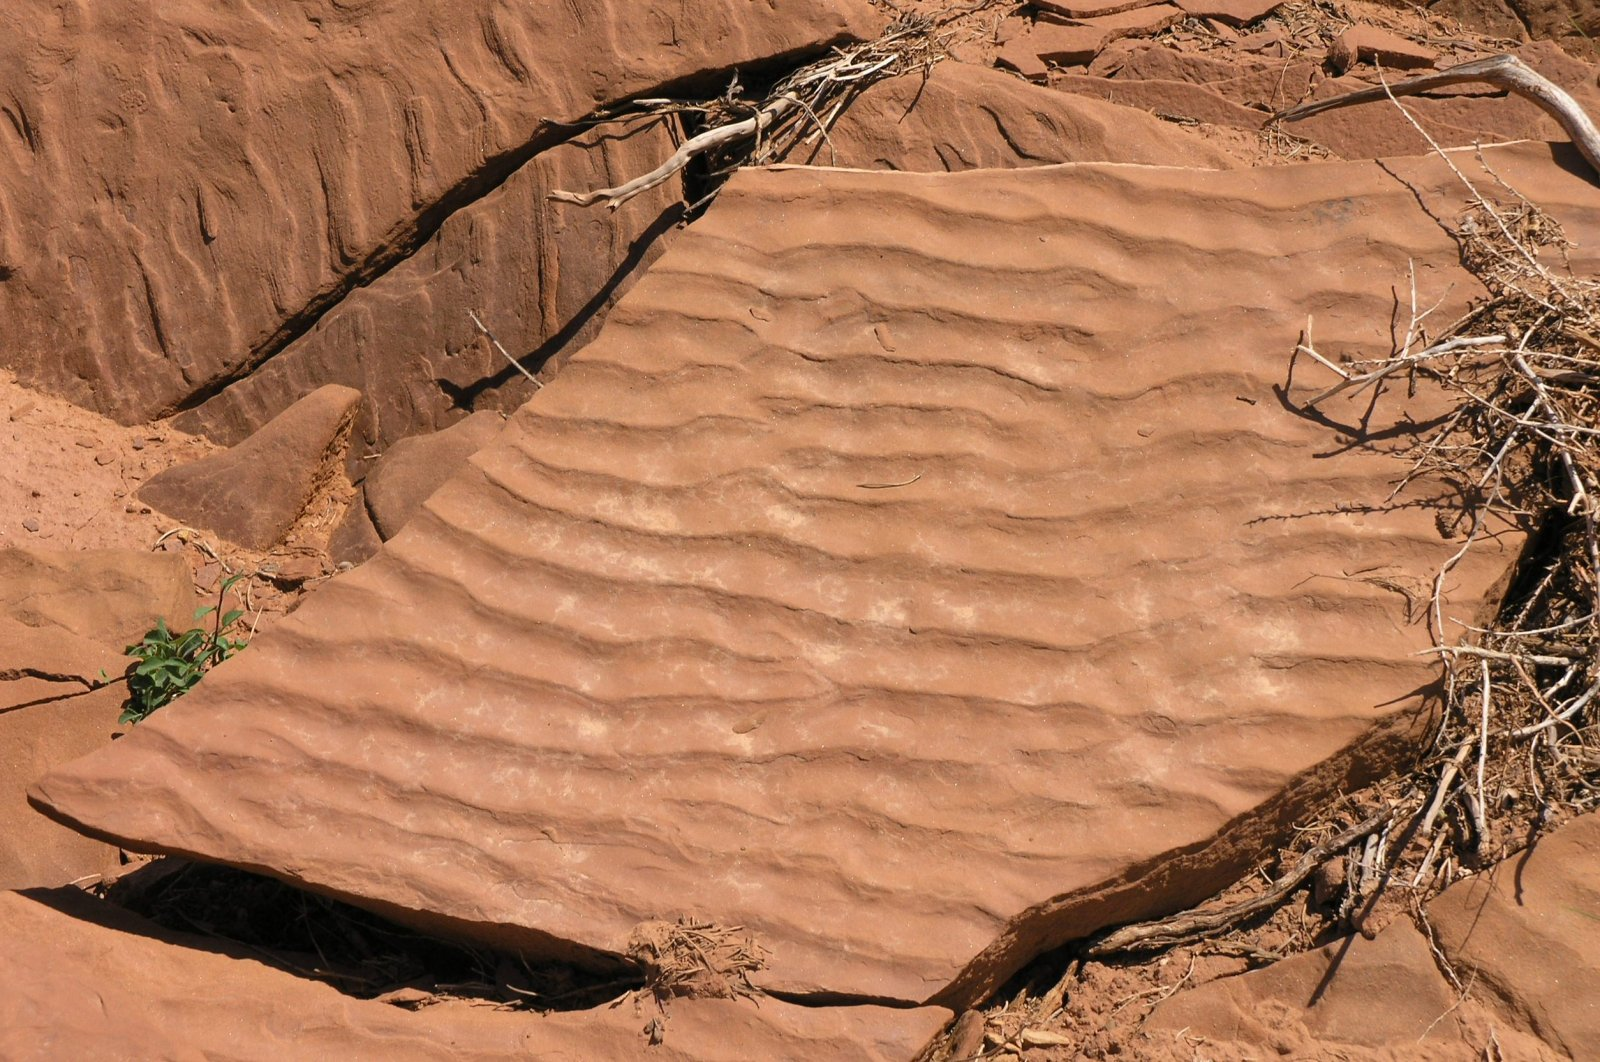 notes on sedementary rocks Sedimentary rock definition at dictionarycom, a free online dictionary with pronunciation, synonyms and translation look it up now.